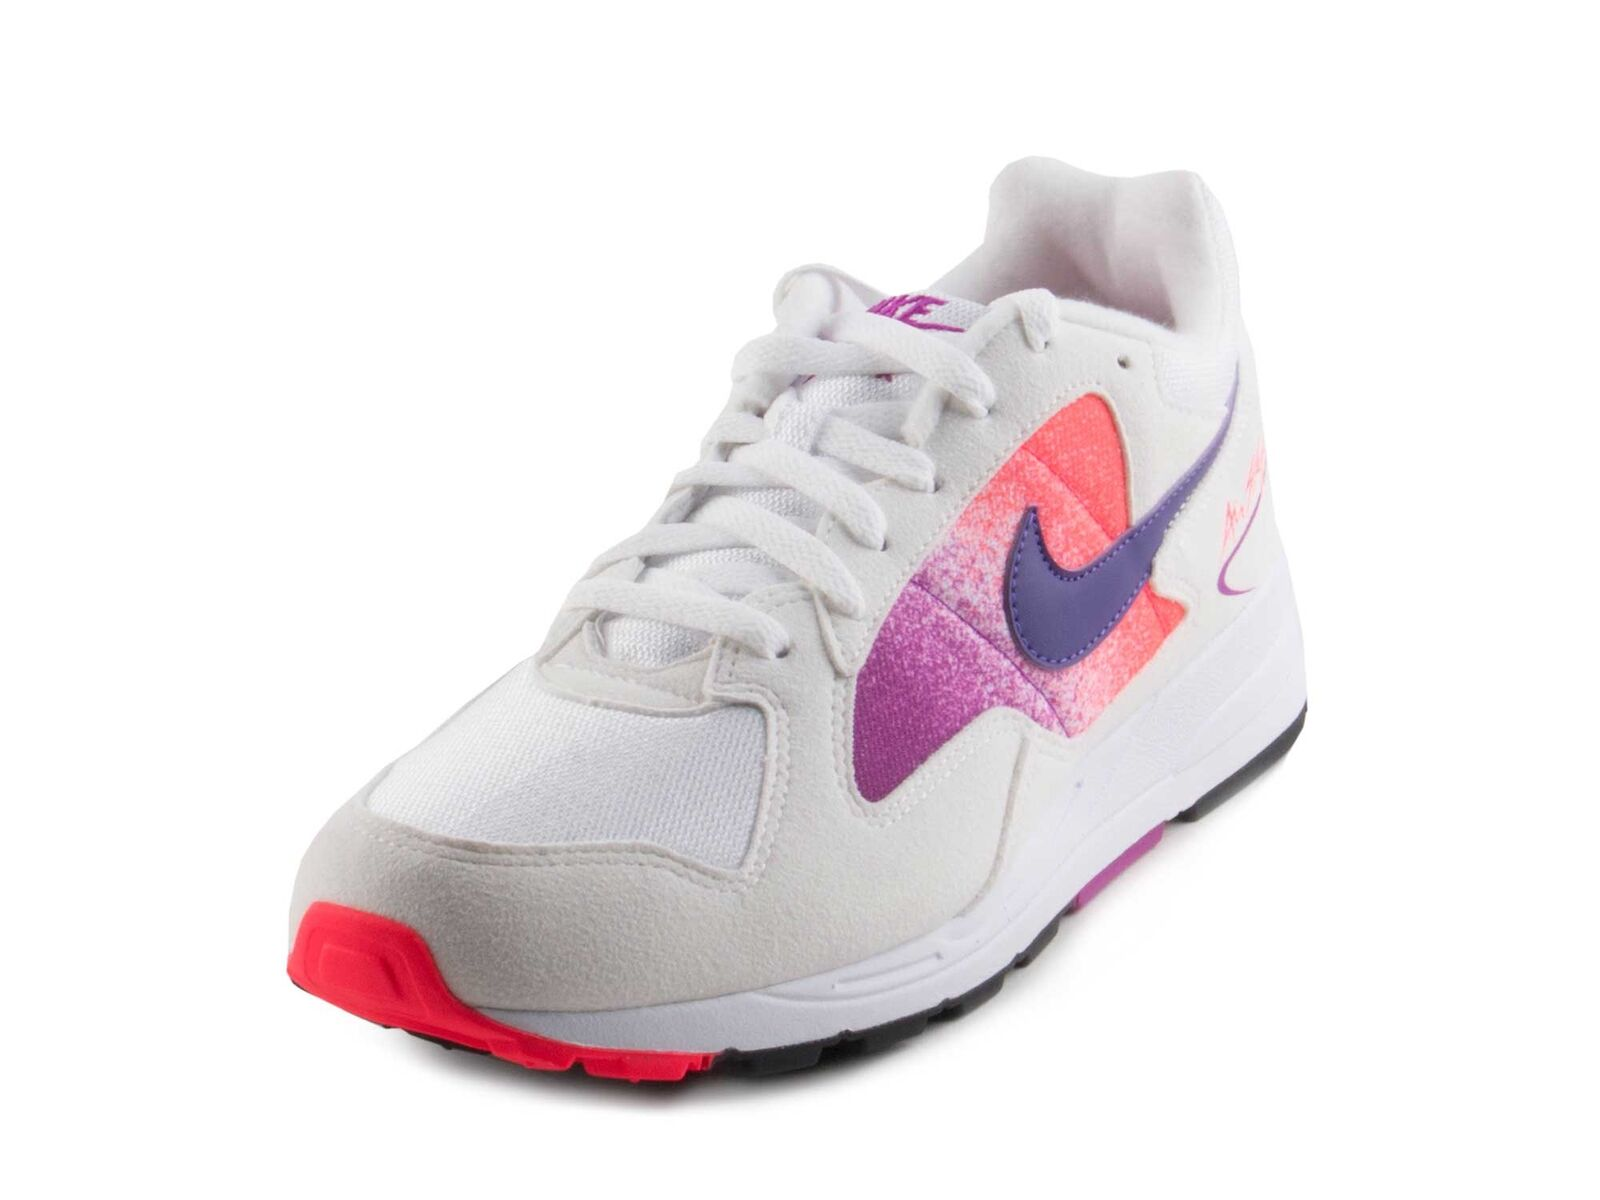 Nike Uomo Air Skylon II White/Court Purple-Solar red AO1551-103